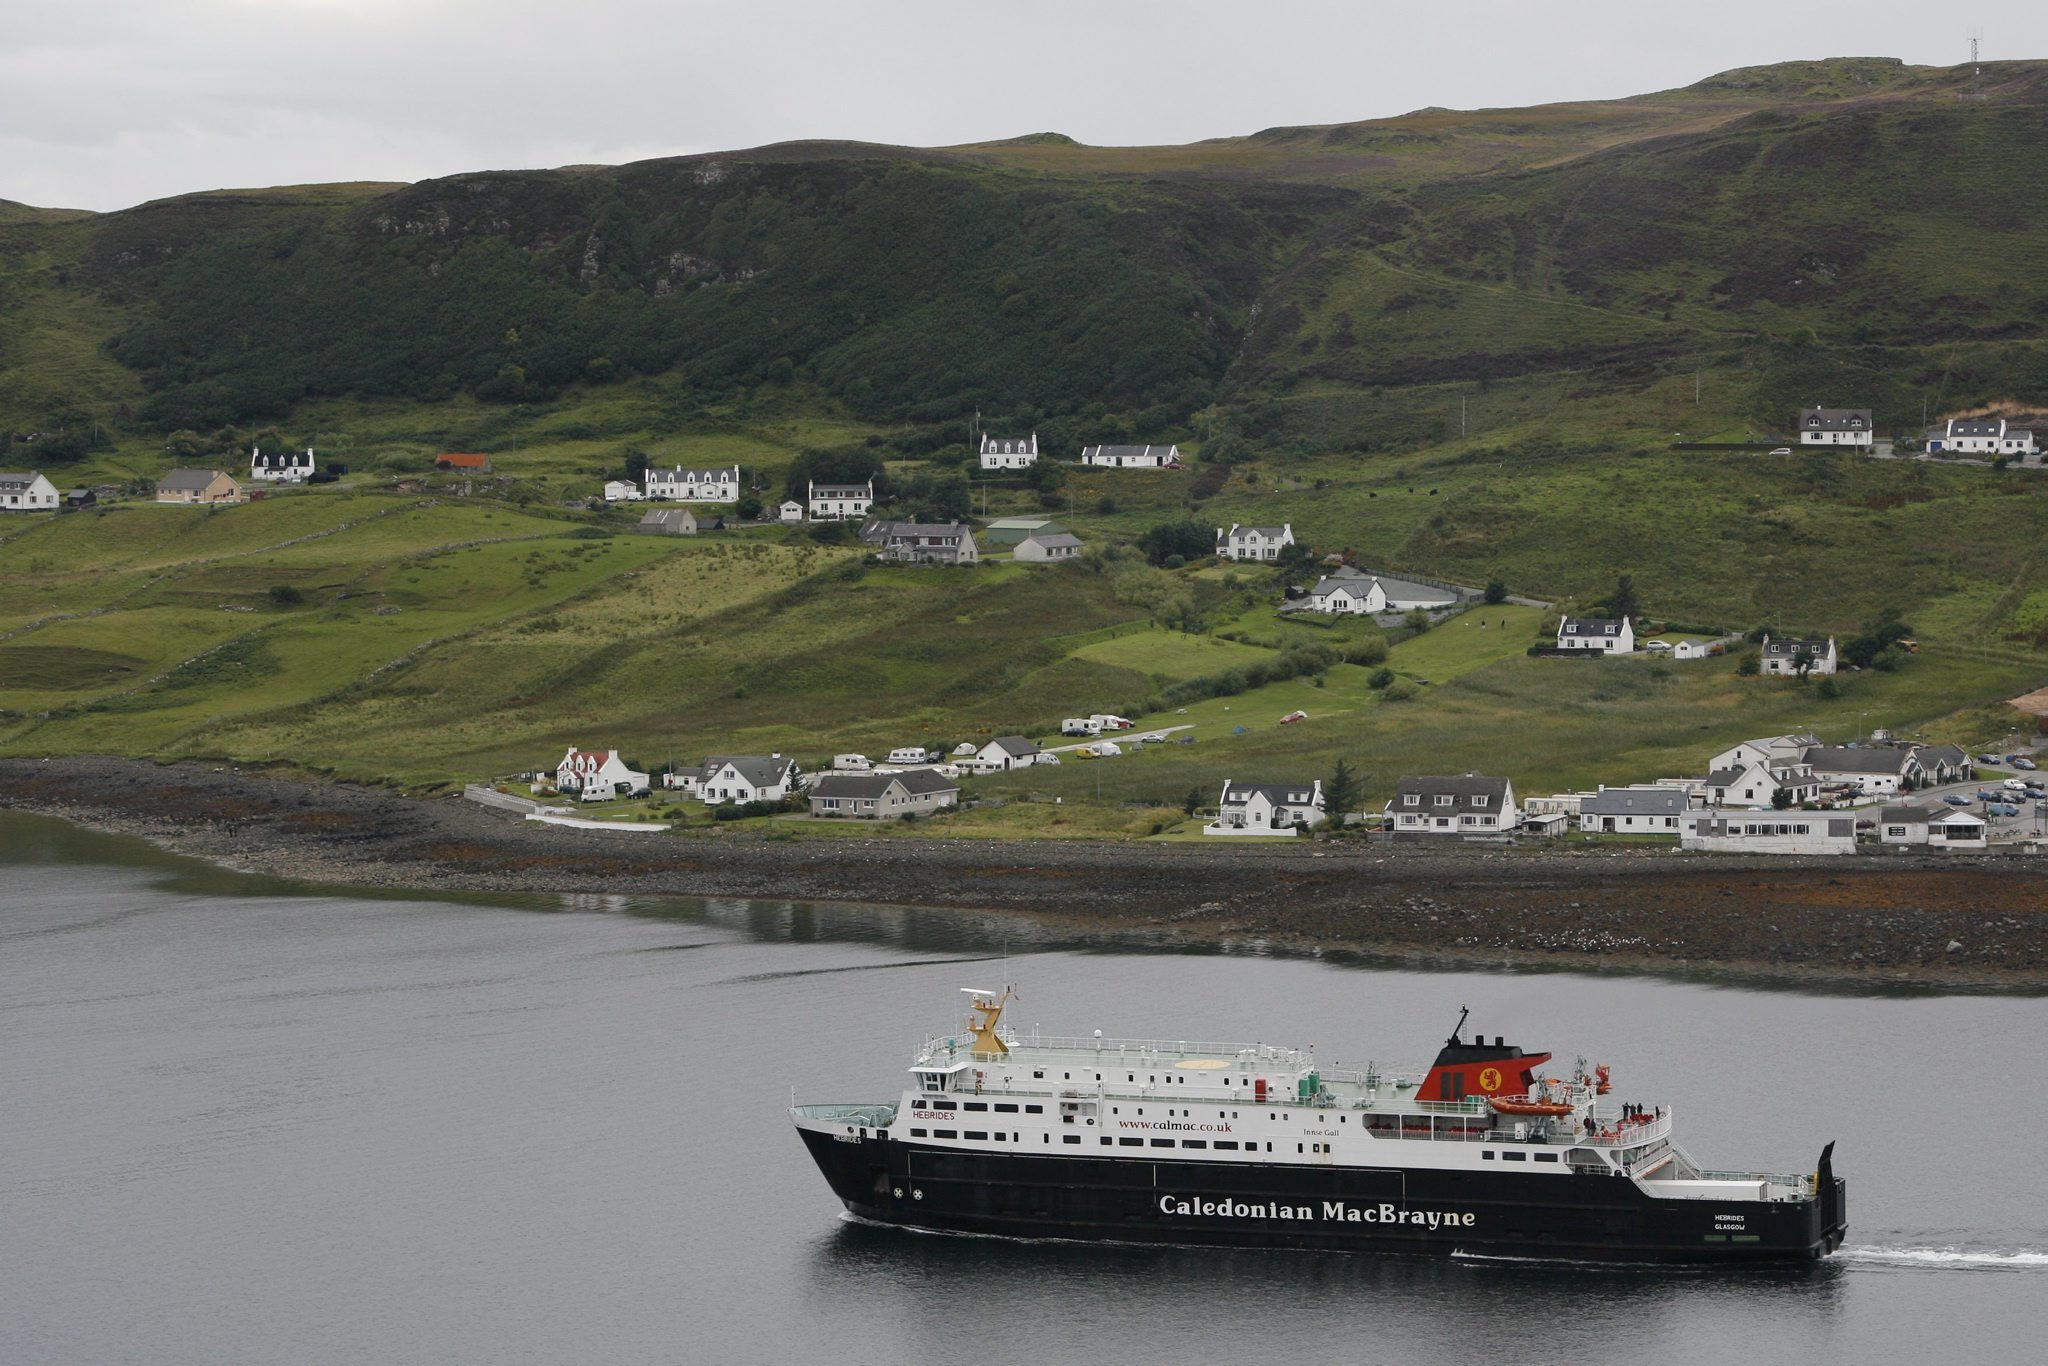 A CalMac ferry sailing out of Uig on Skye